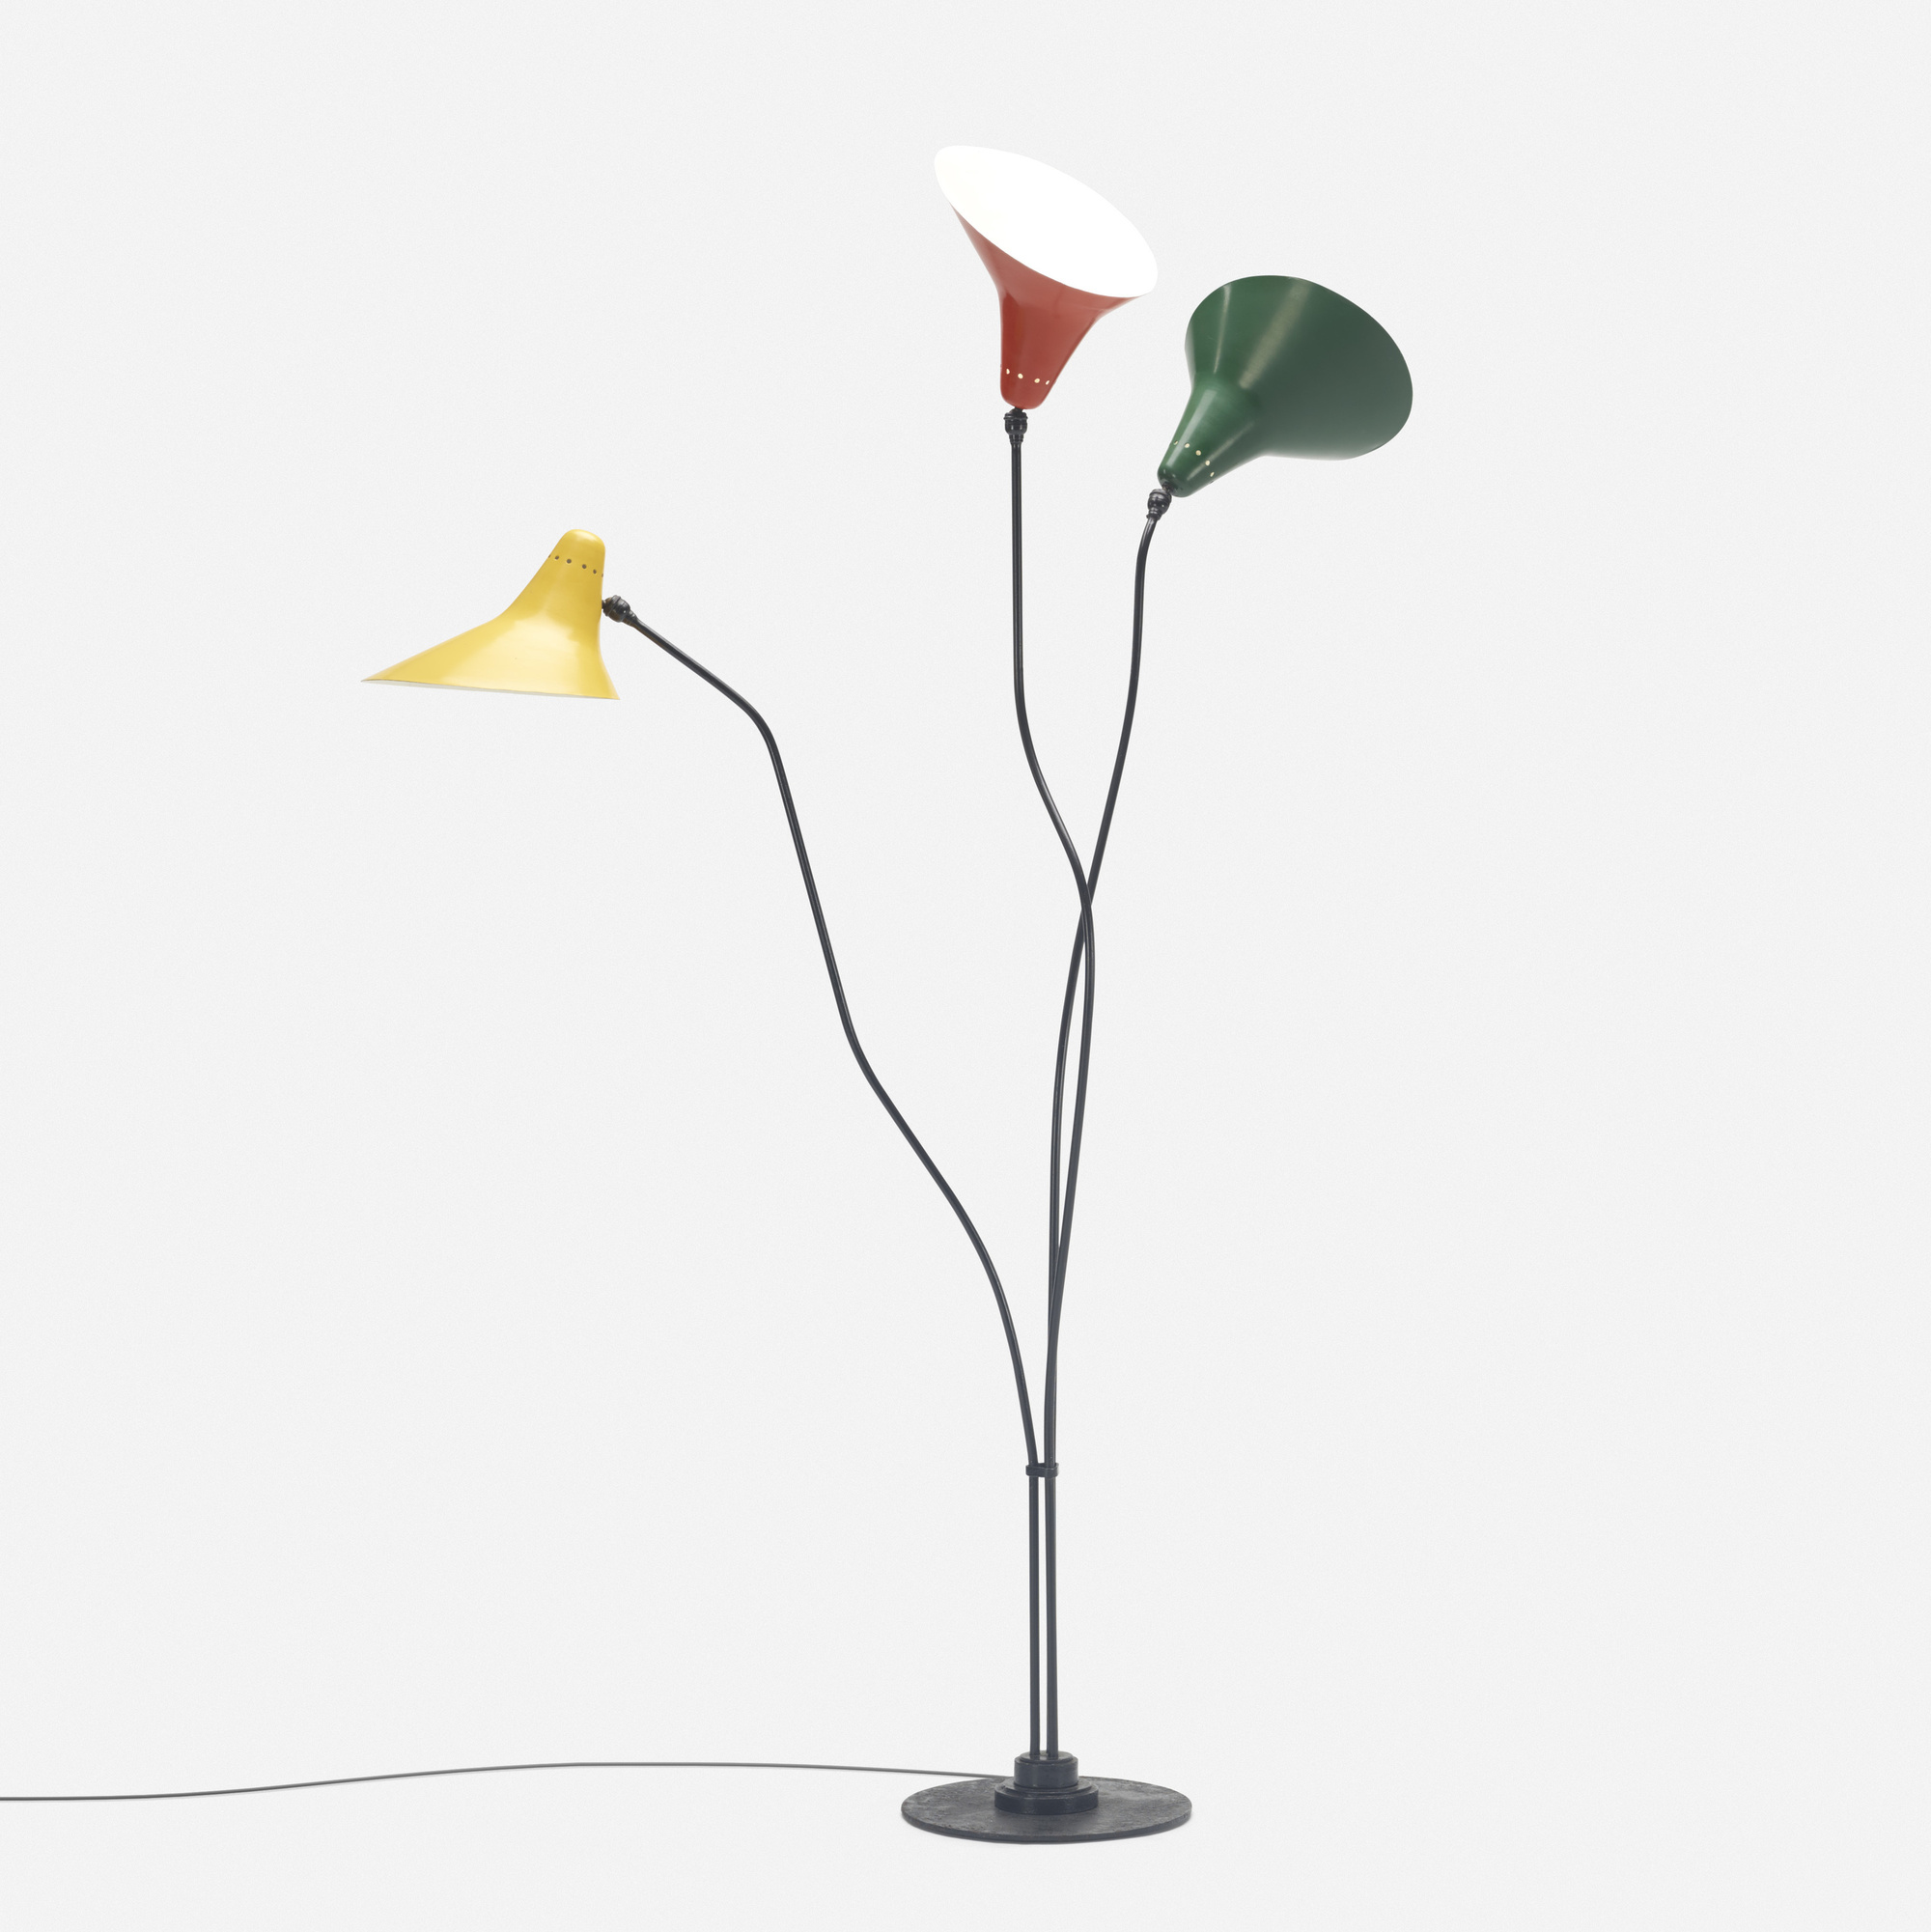 409: Boris Lacroix / floor lamp (1 of 2)